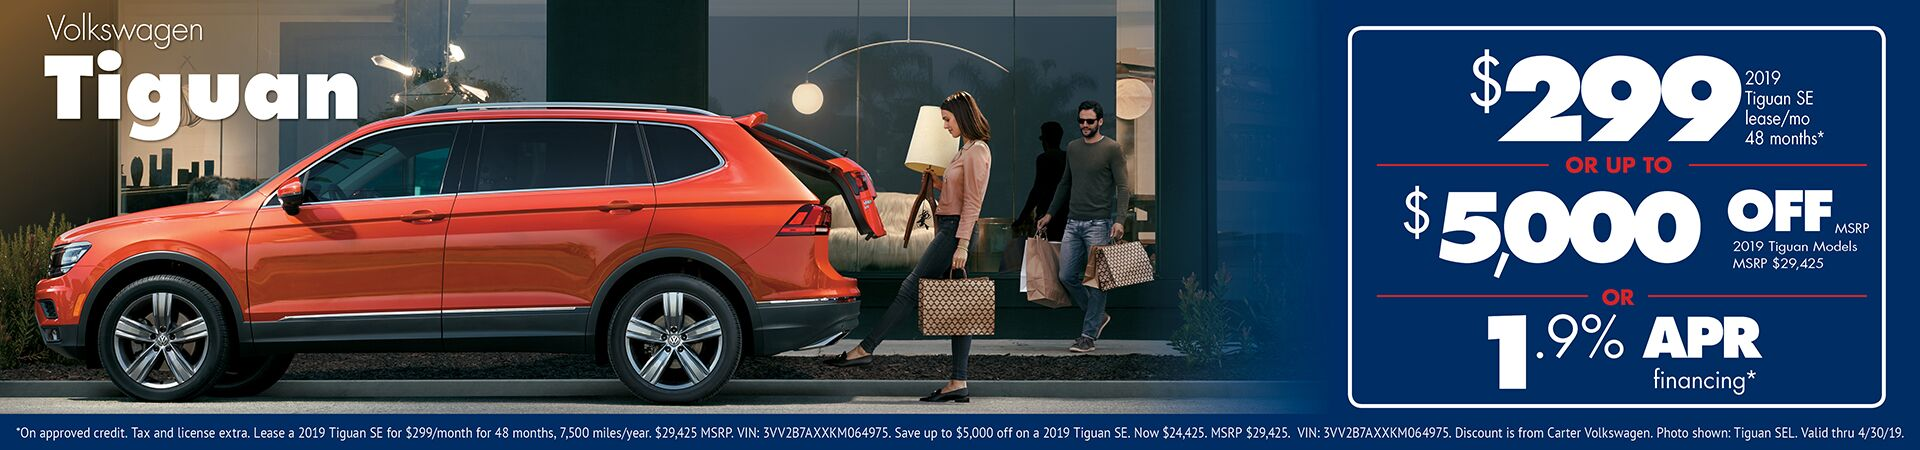 2019 VW Tiguan Special Savings Offers